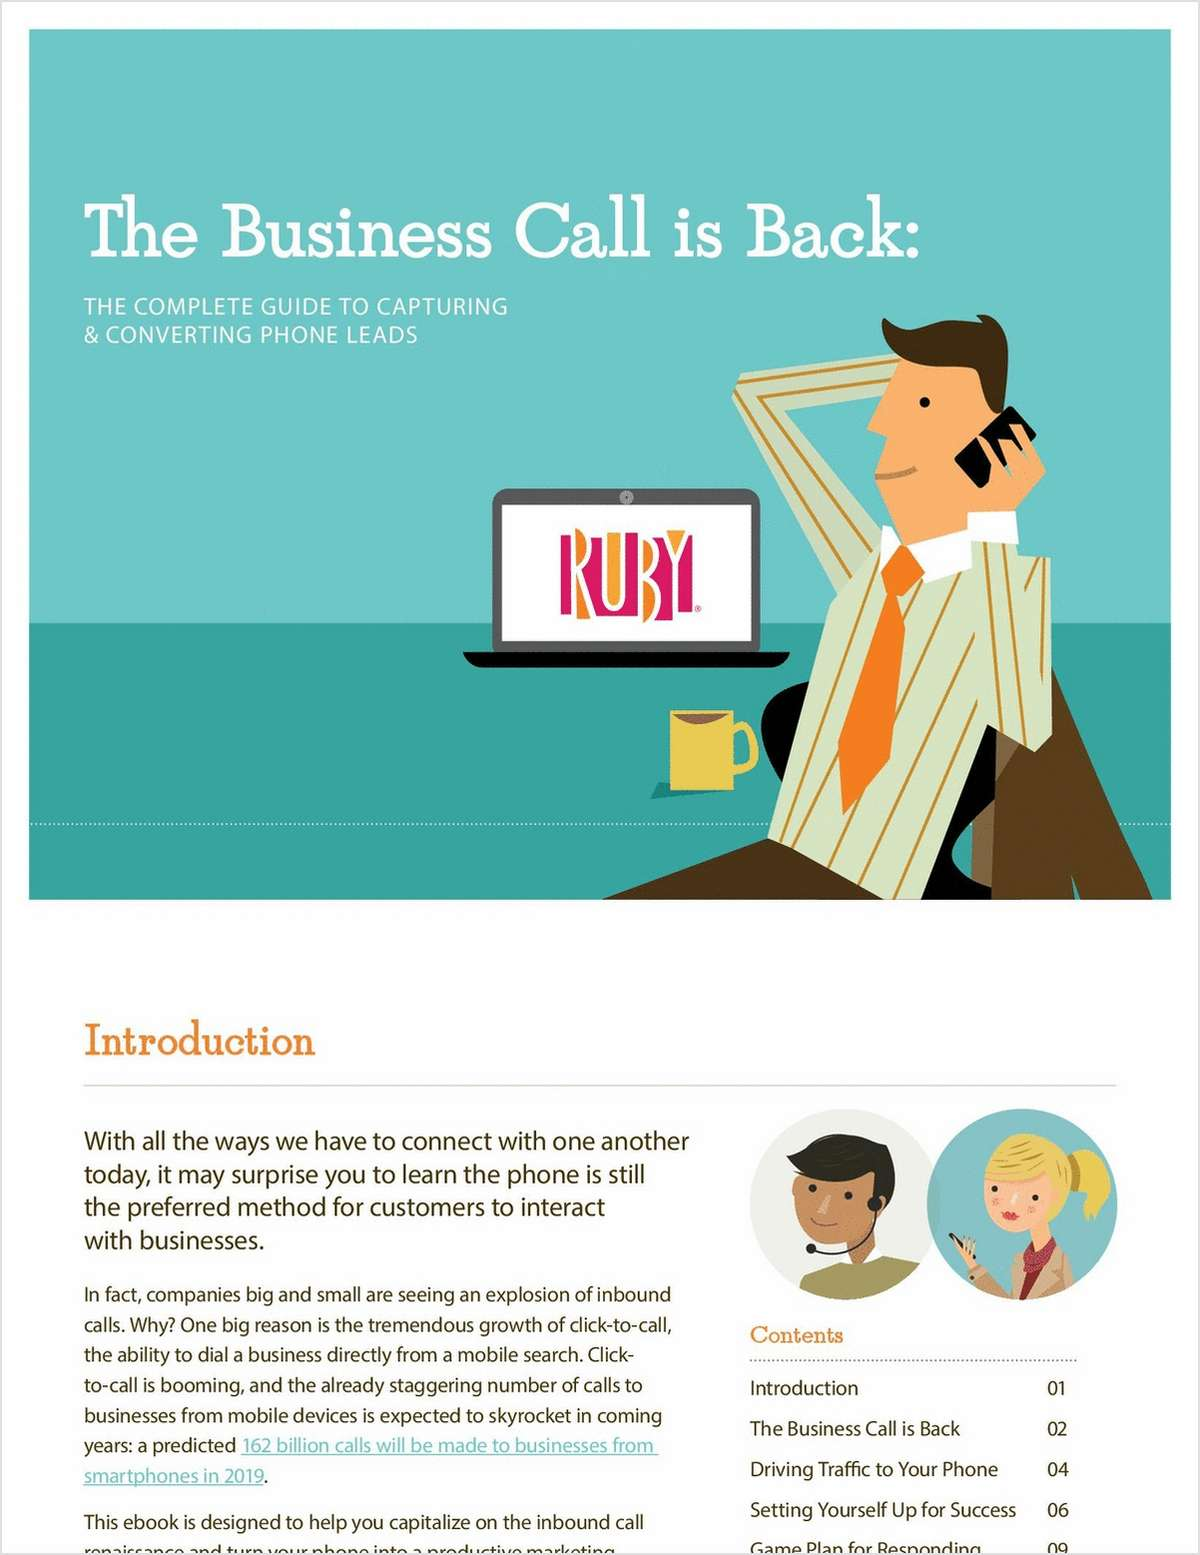 Capturing and Converting Phone Leads